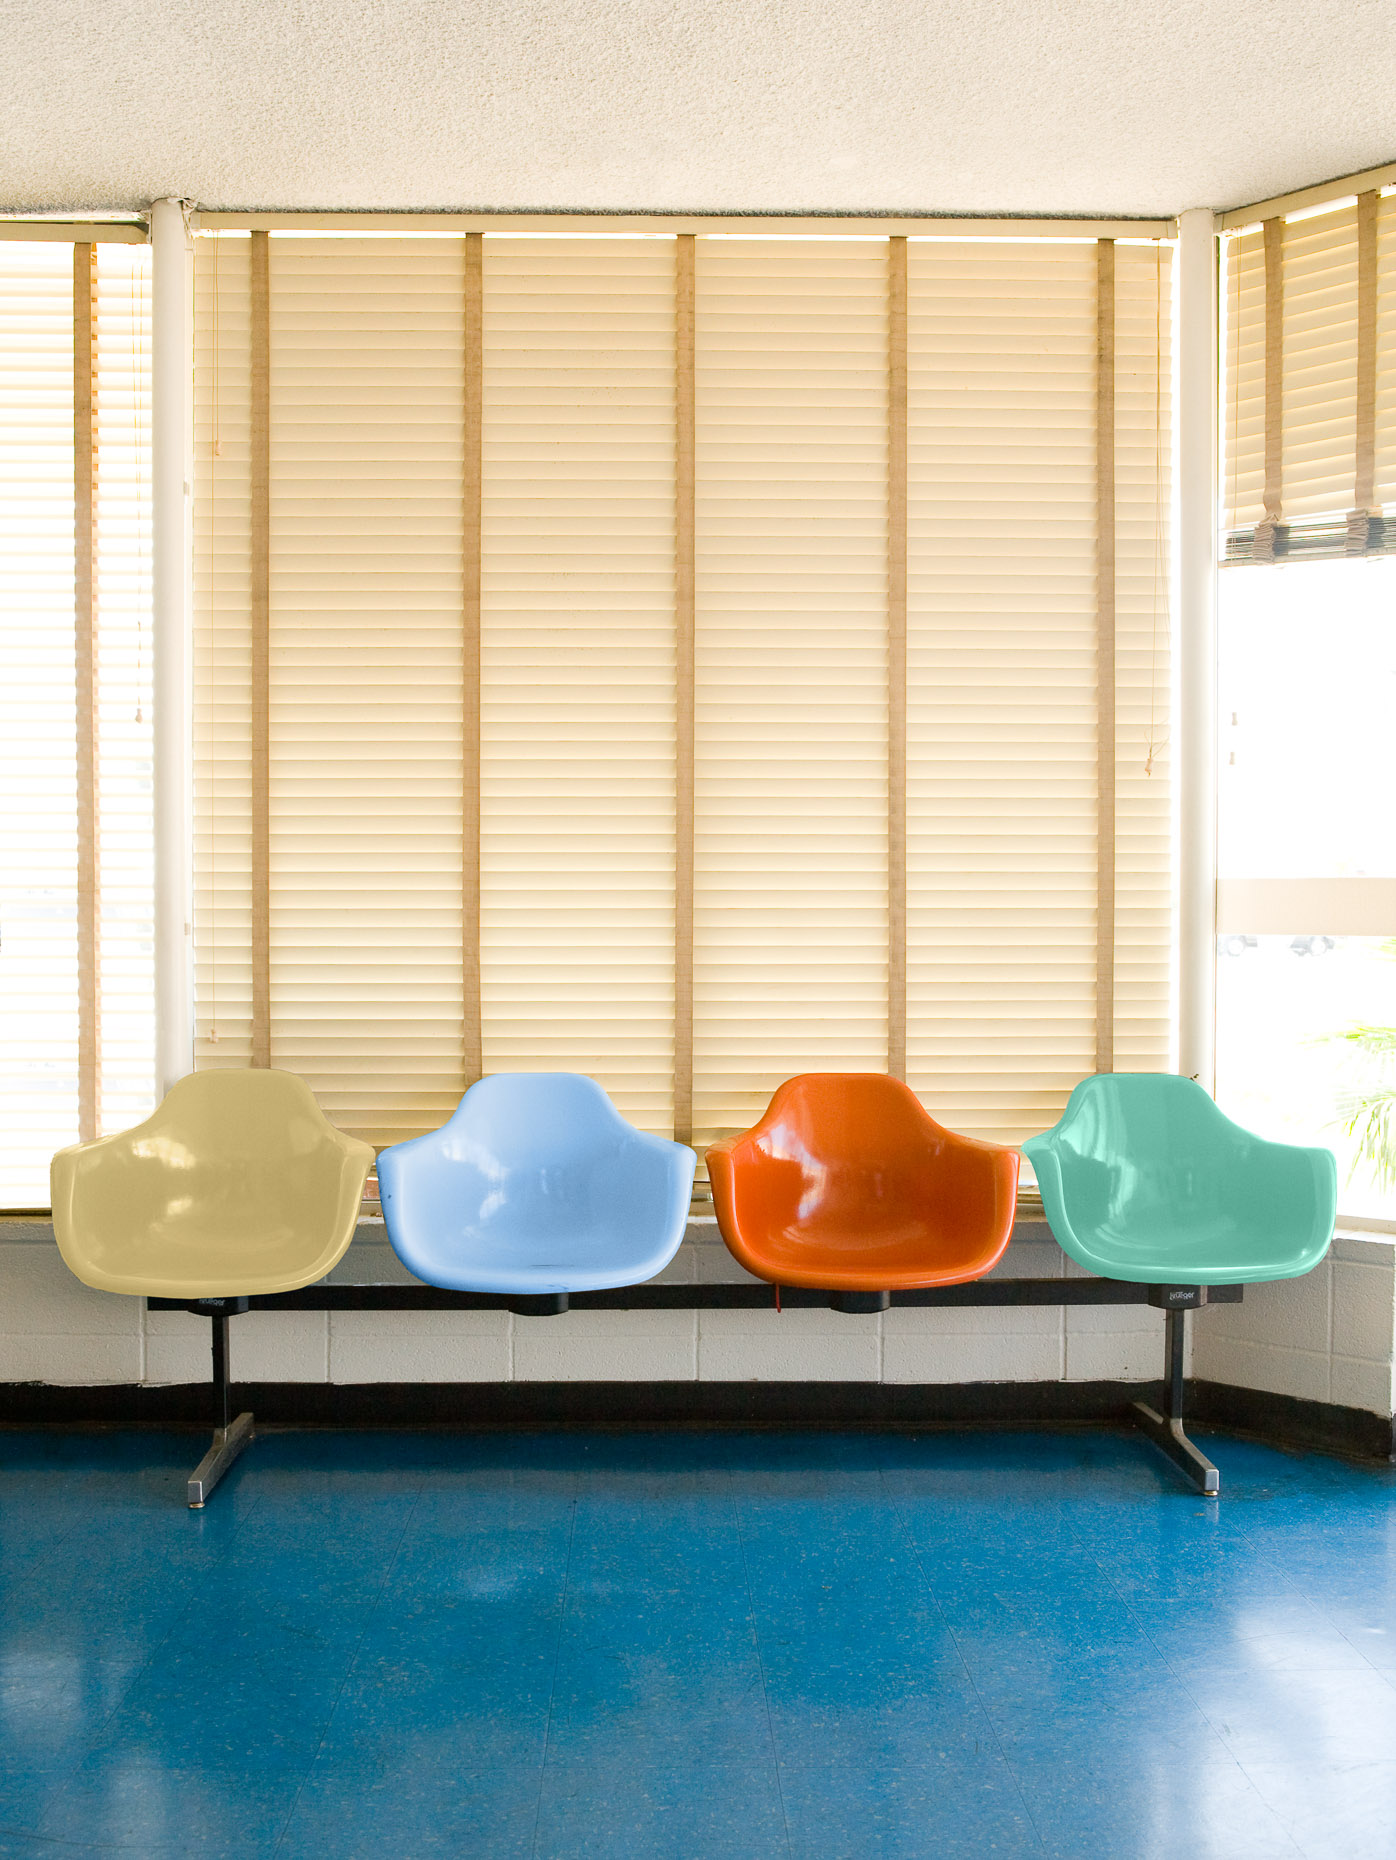 Moulded plastic chairs in a row creating seating in a bus station waiting room with Venetian blinds by David Zaitz